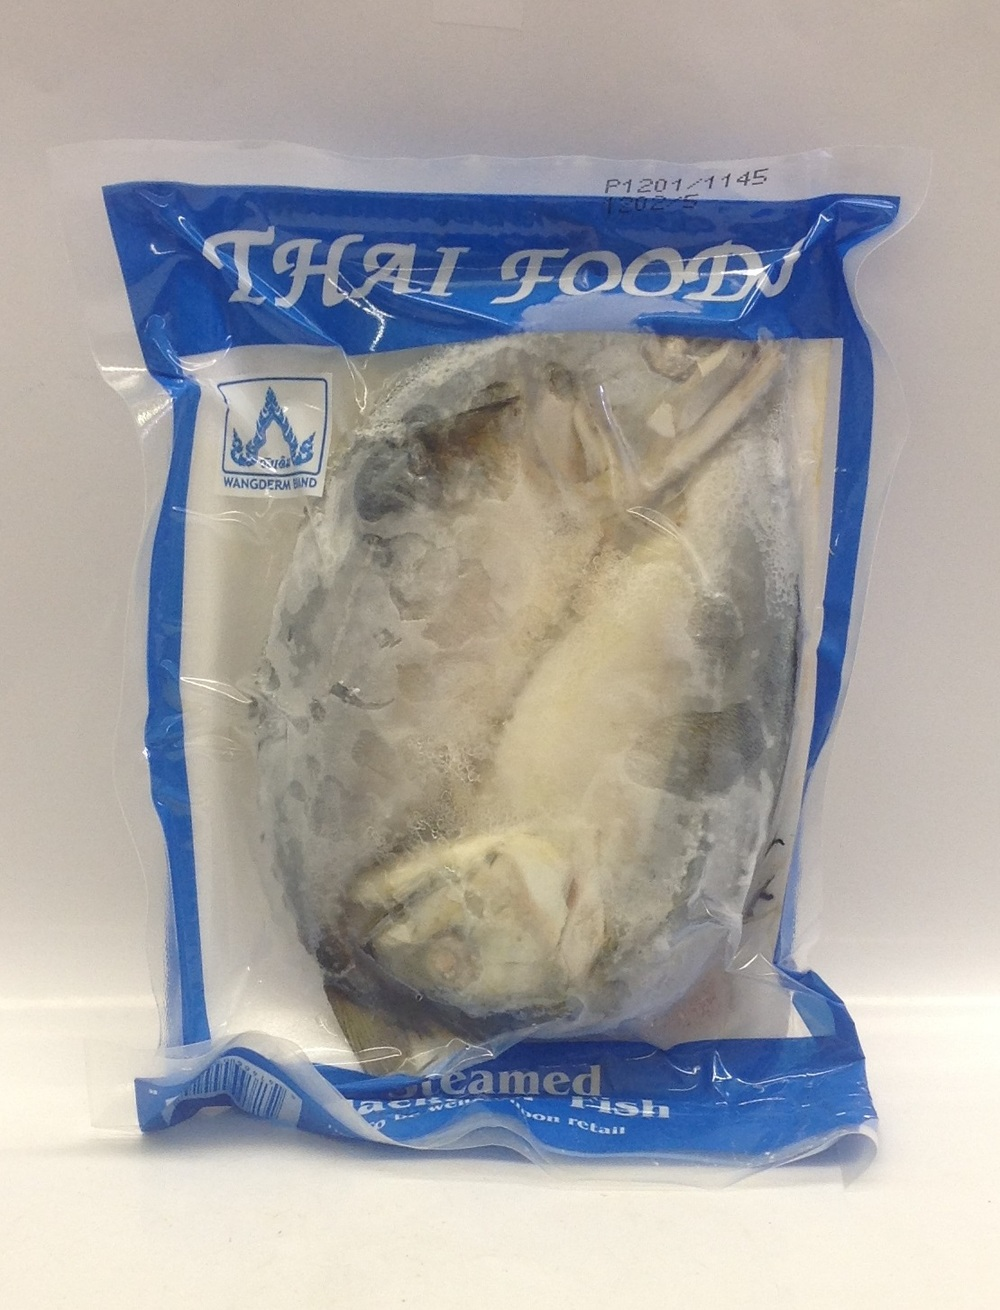 Frozen Steam Mackerel   Wangderm   FZF7362 36x2 pieces  FZF7362B 2 pieces